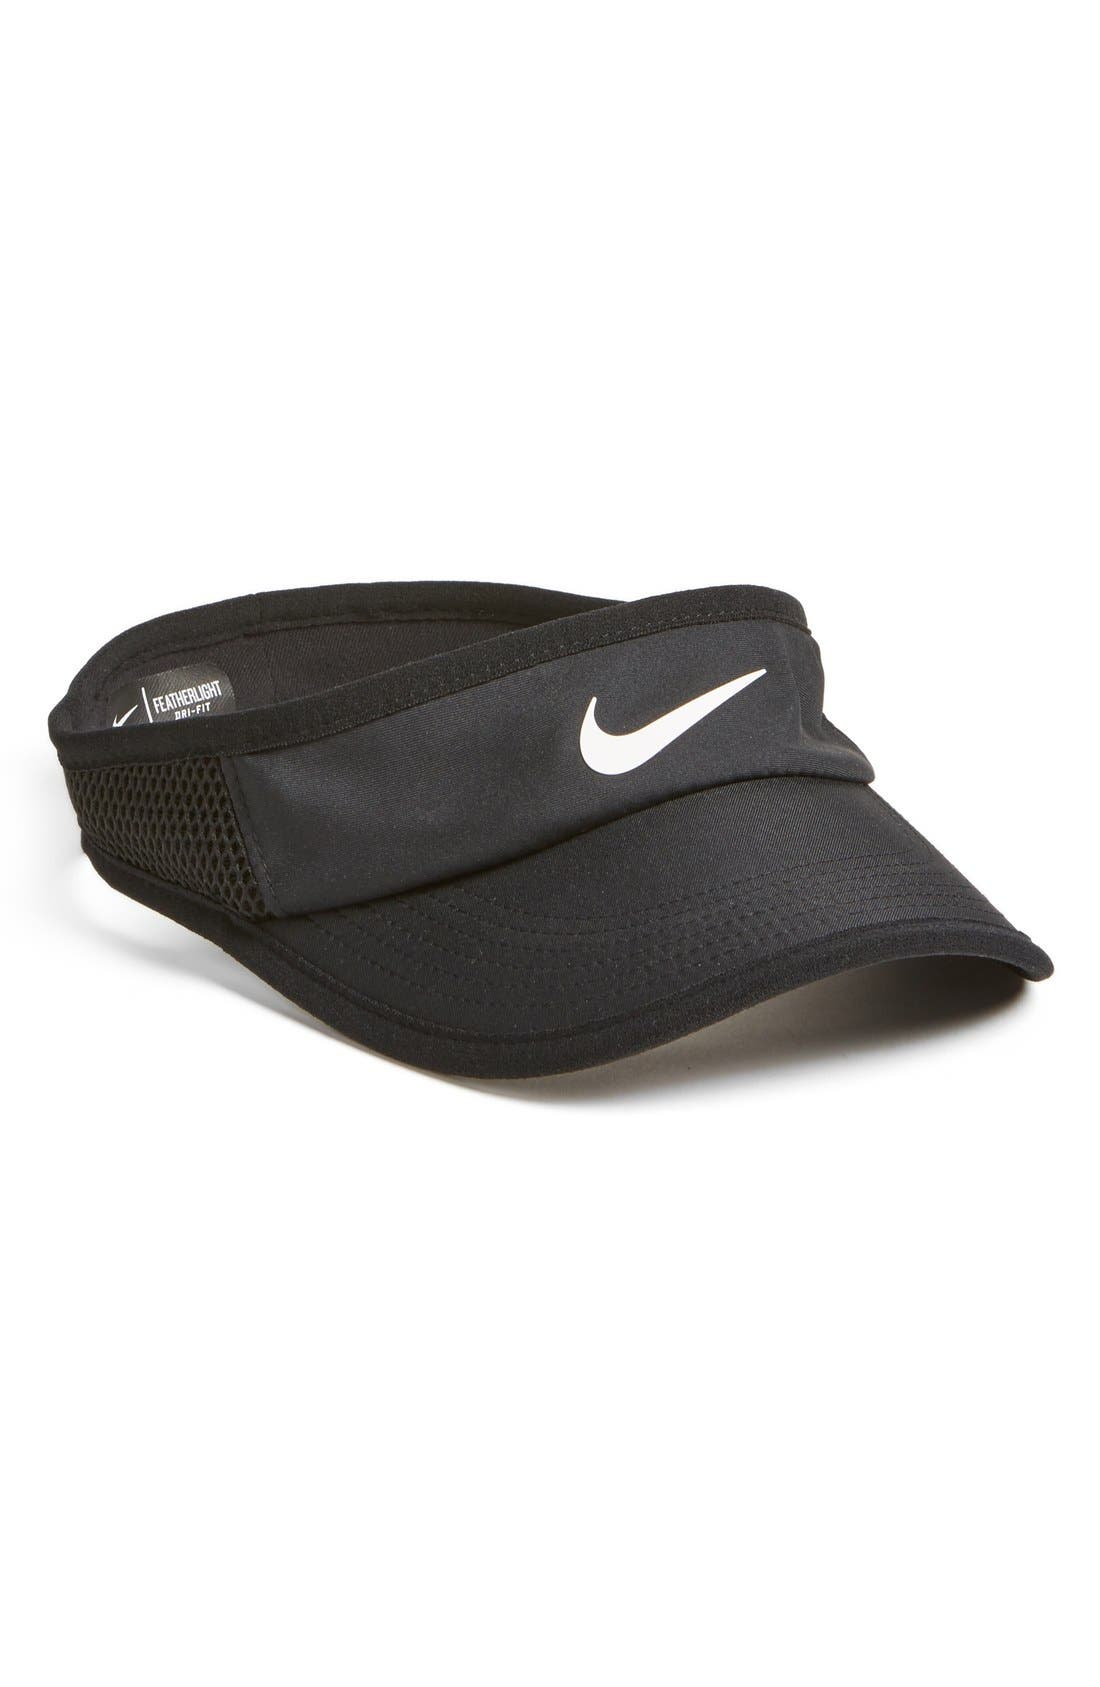 Main Image - Nike 'Featherlight' Dri-FIT Visor